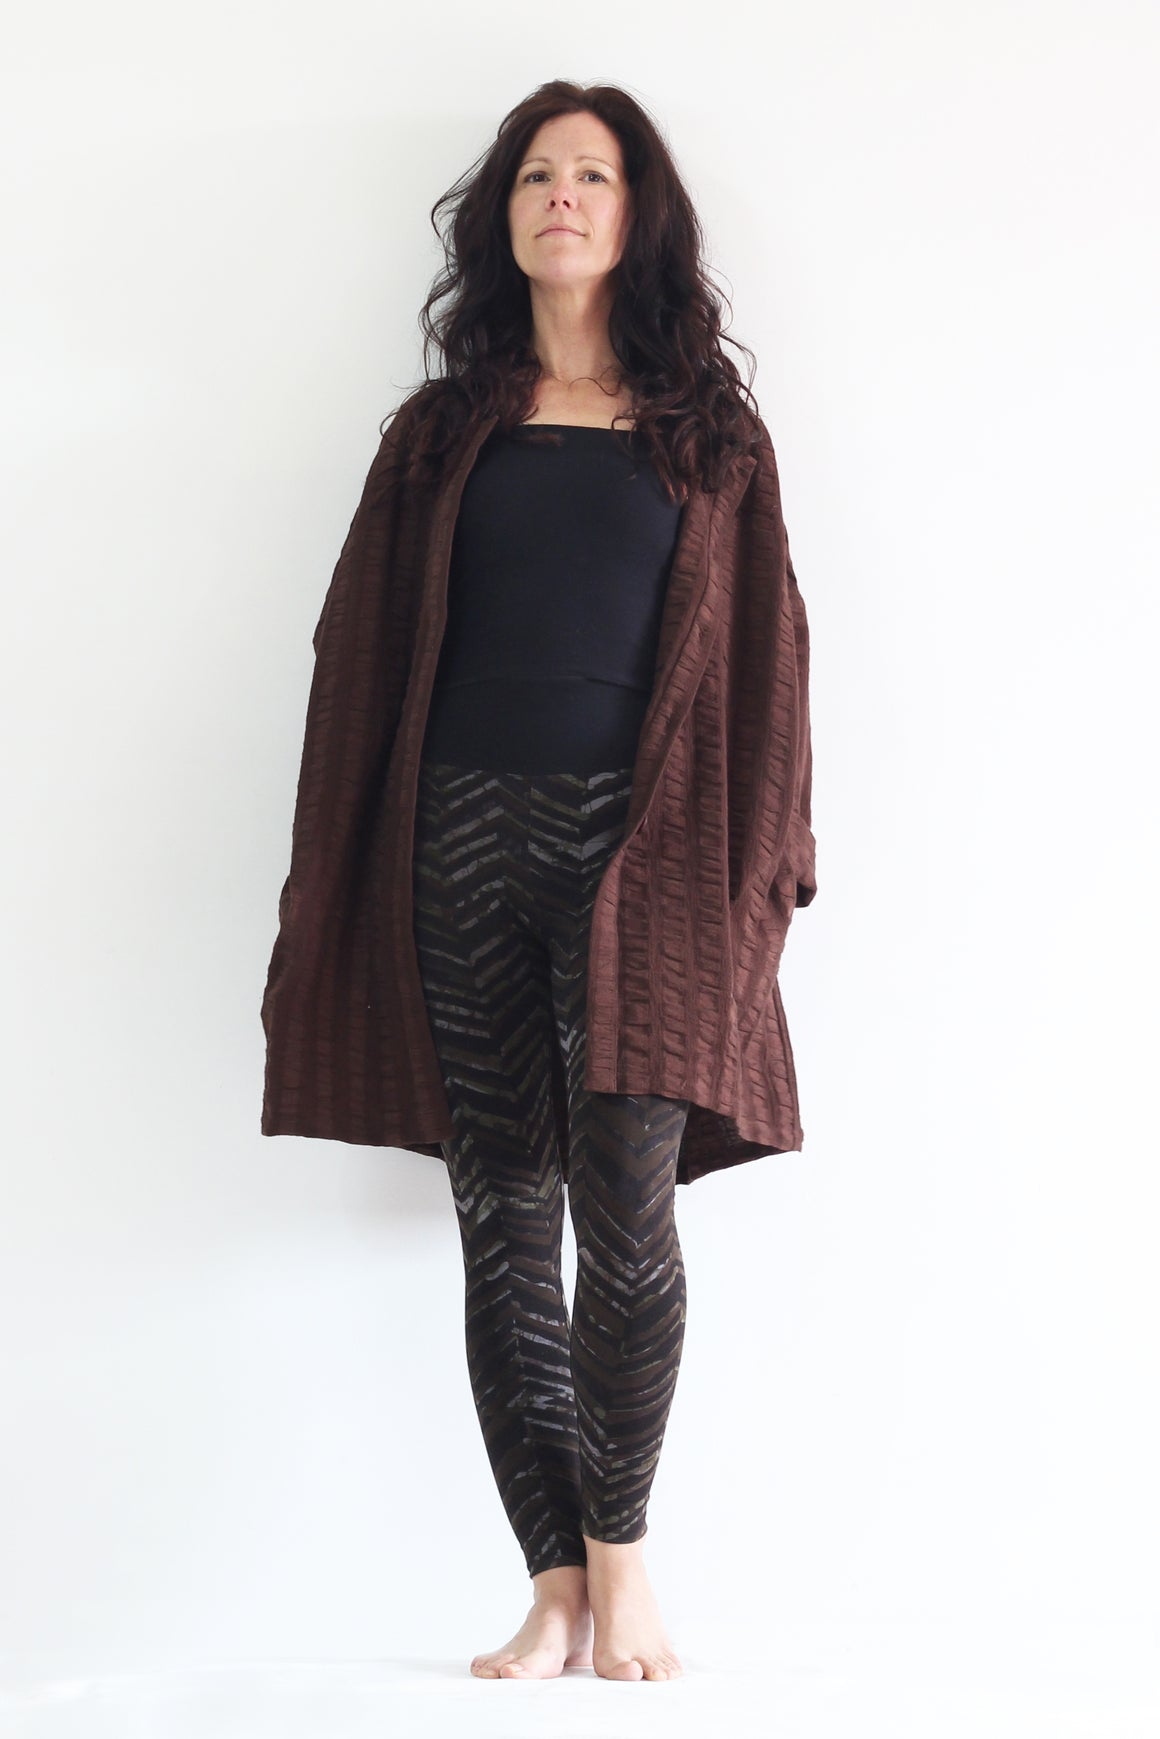 BronzeMe Chocolate - Biggy Short Jacket, Leggings, and Classic Top - 3 Piece Outfit